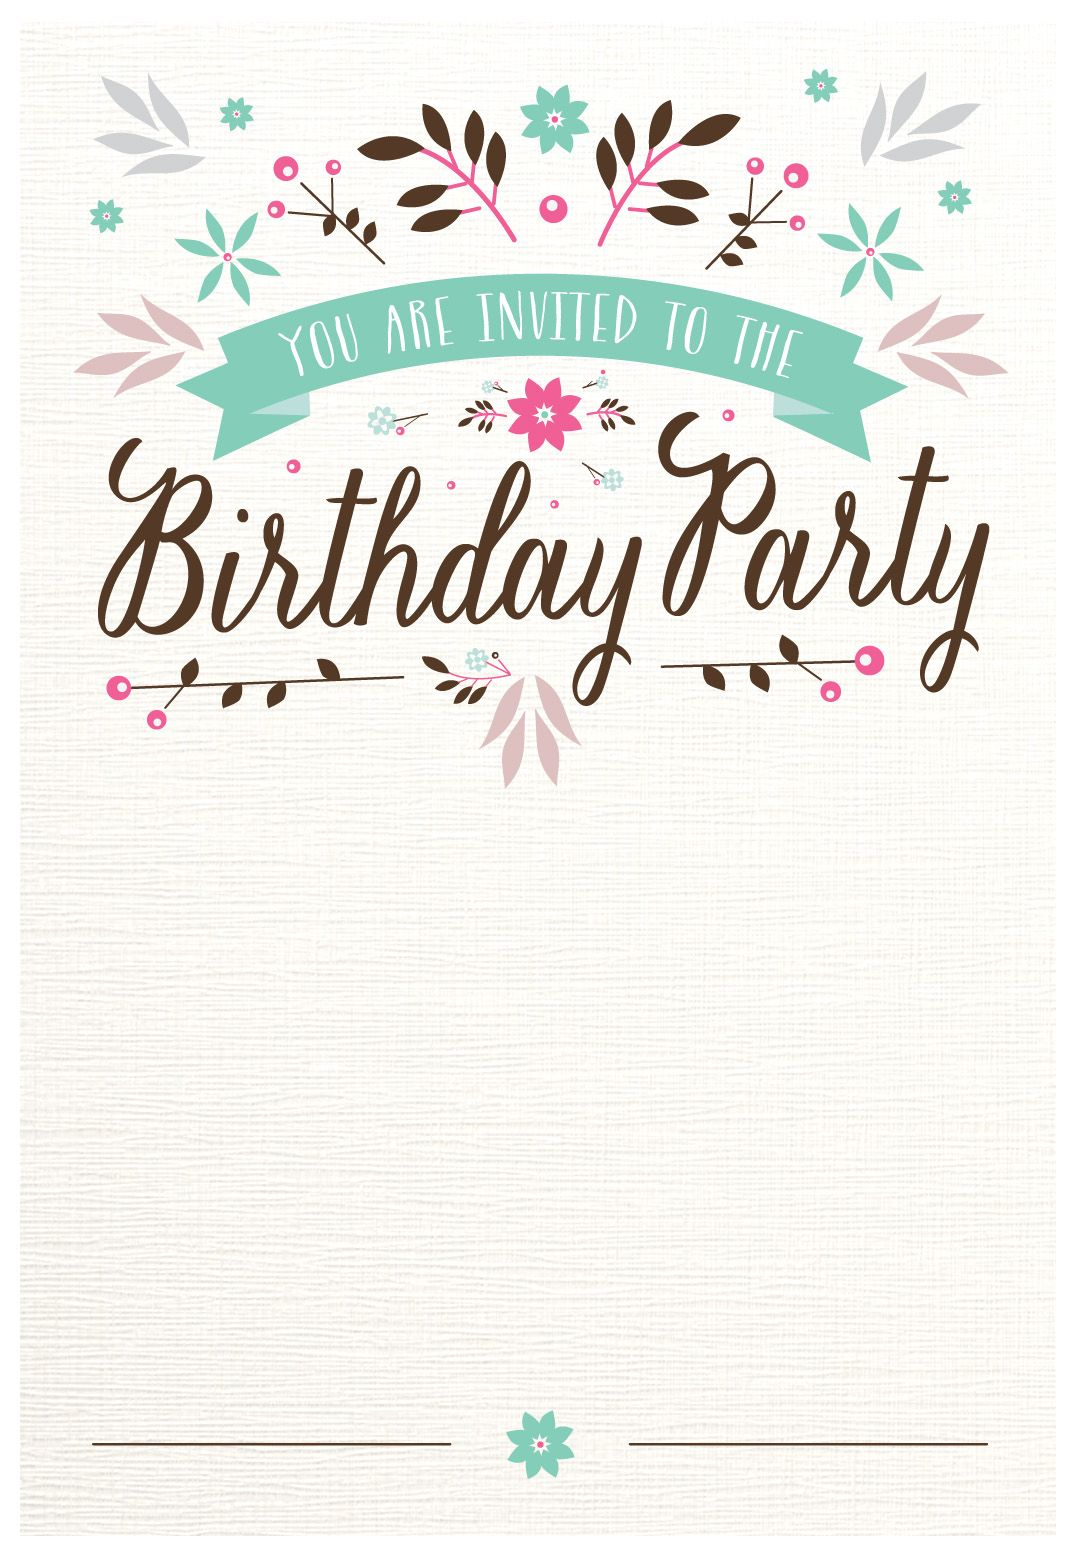 Flat Floral Free Printable Birthday Invitation Template - 21st birthday invitations pinterest